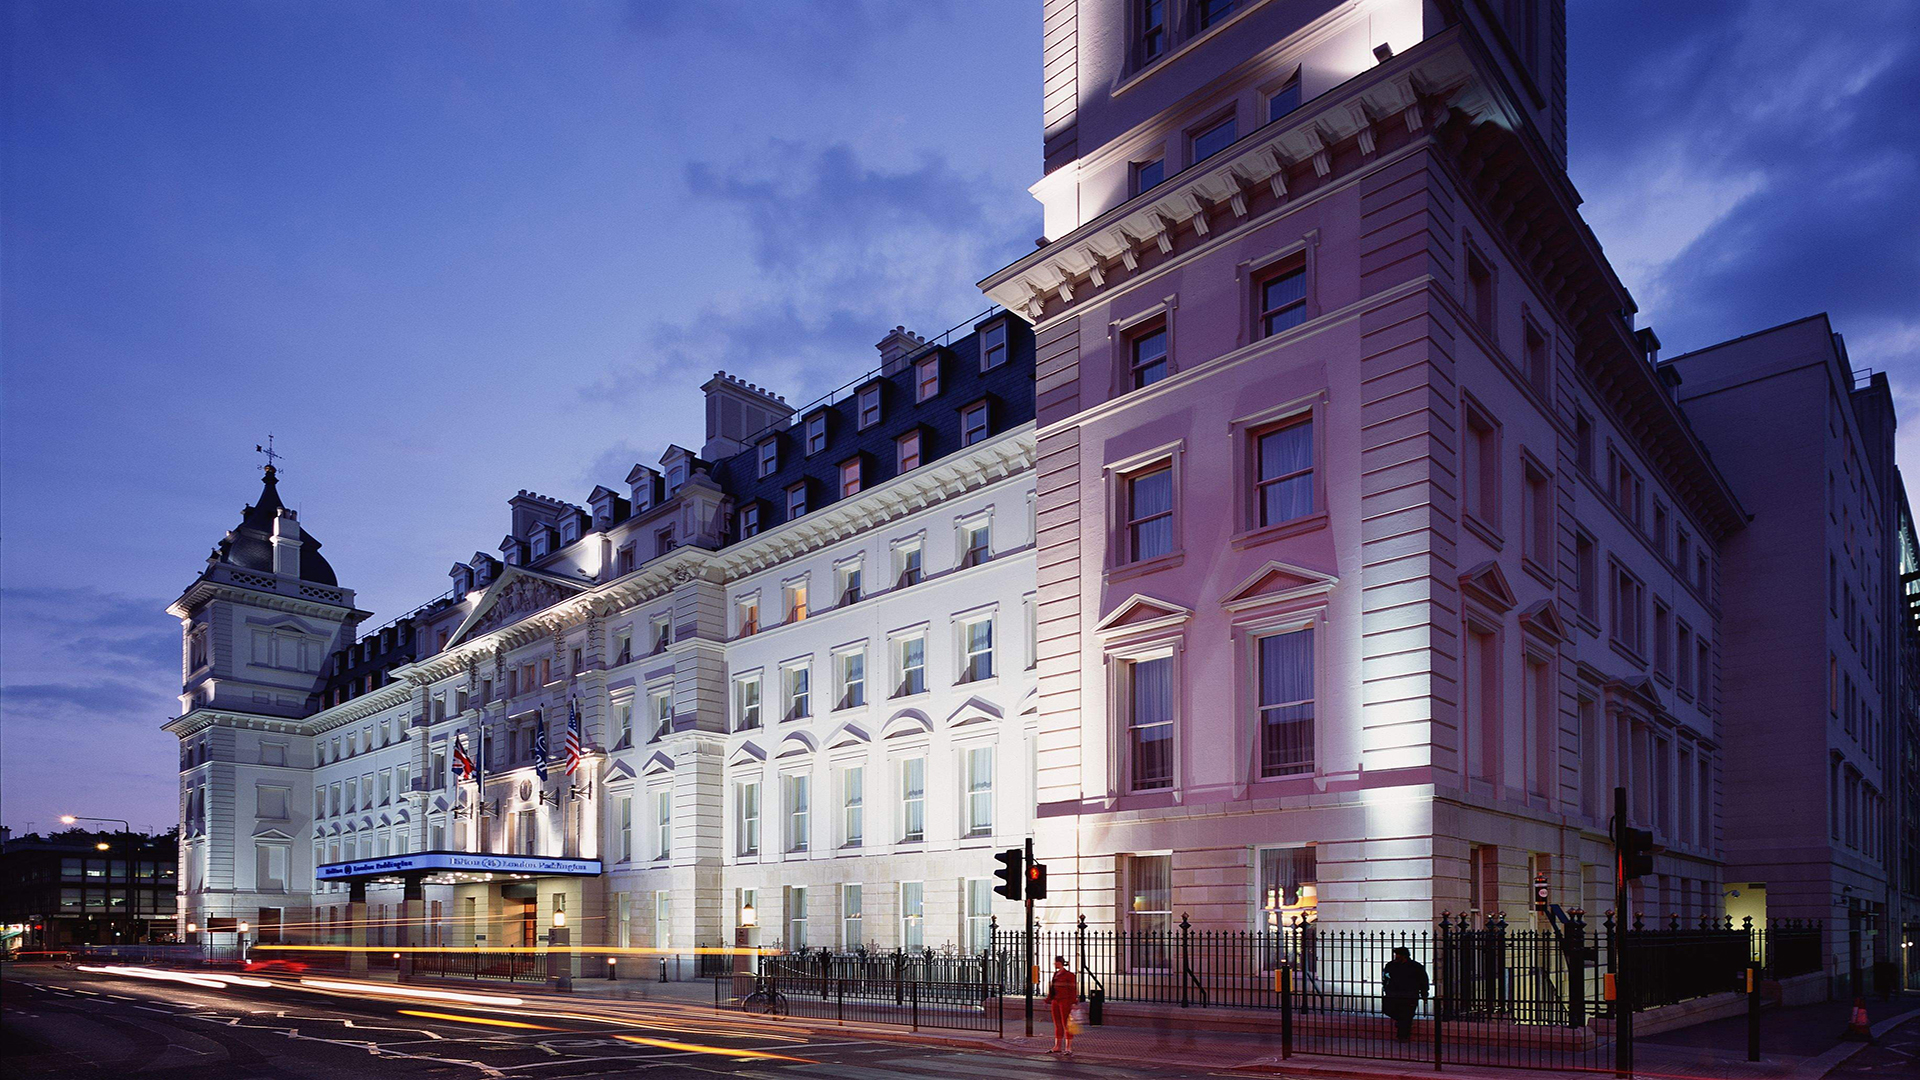 Image of Exterior at Night, Hilton London Paddington, United Kingdom, 1854, Member of Historic Hotels Worldwide, Special Offers, Discounted Rates, Families, Romantic Escape, Honeymoons, Anniversaries, Reunions